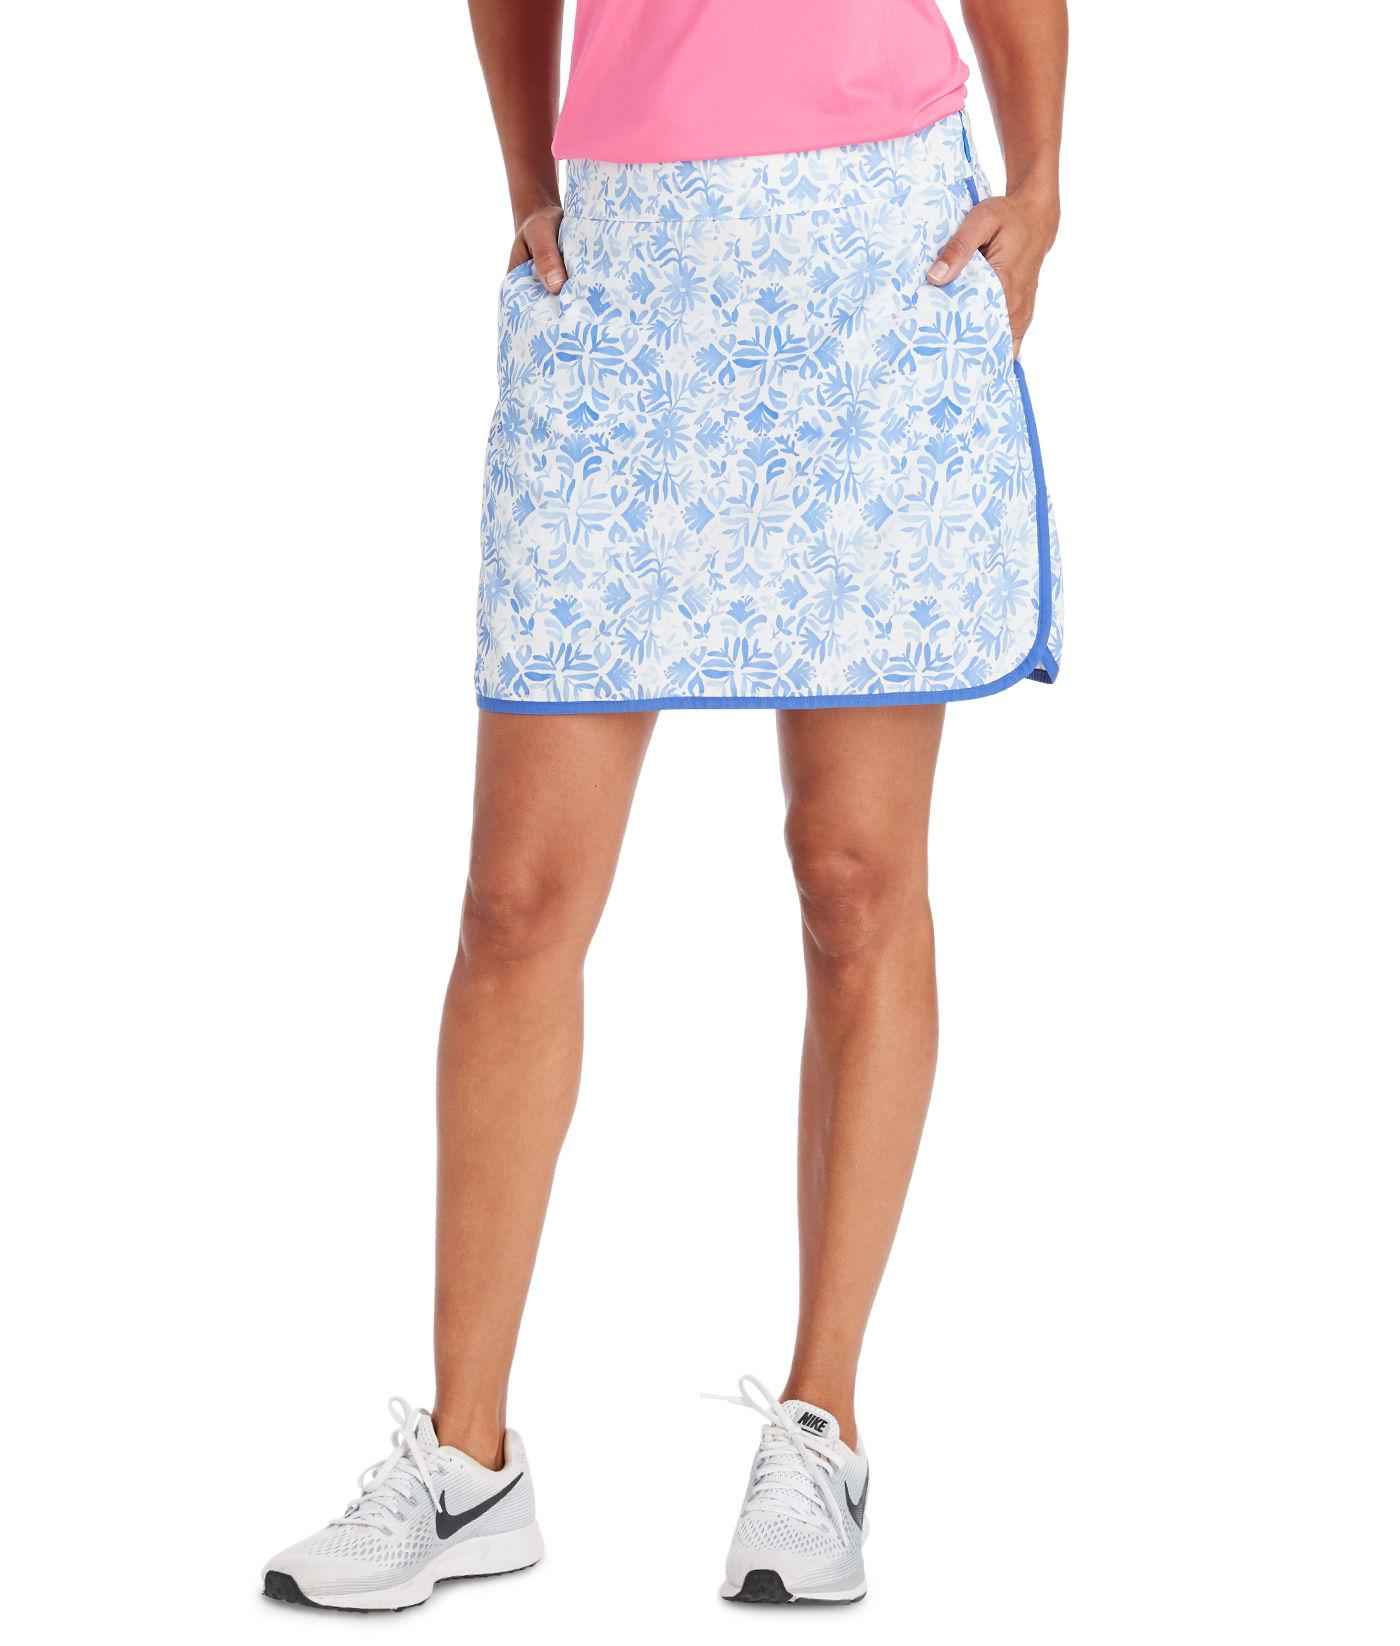 2adc620da2 Lyst - Vineyard Vines 17 Inch Tile Otomi Woven Golf Skort in Blue